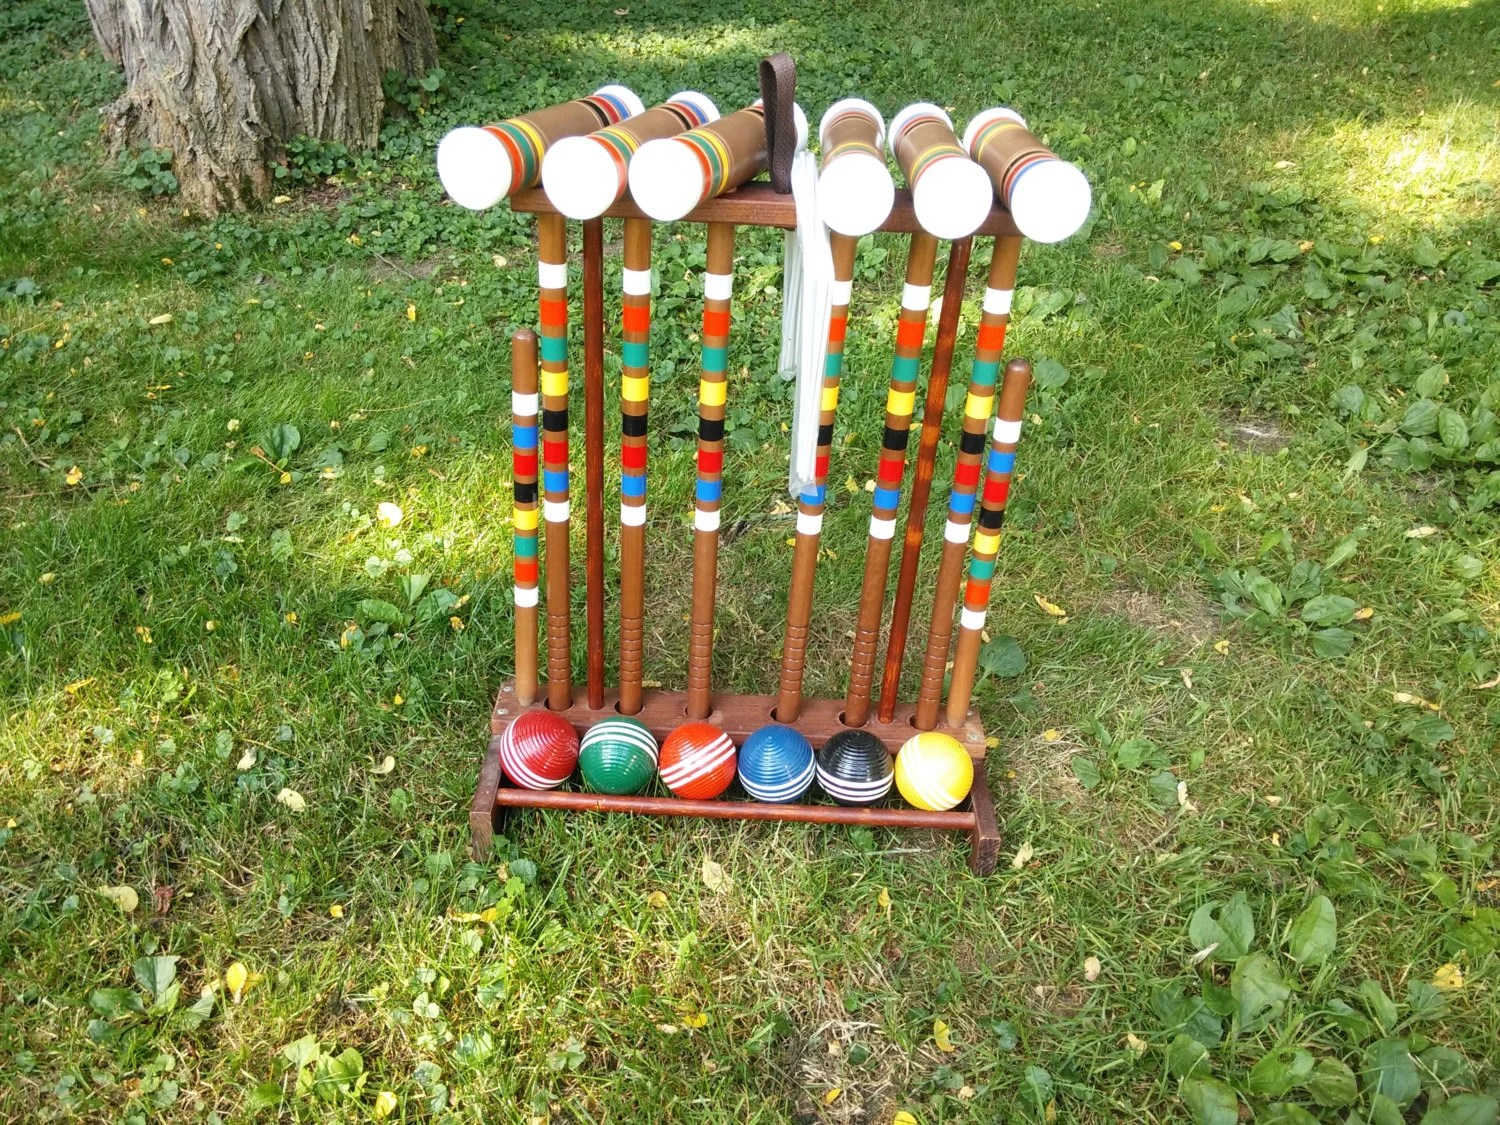 Vintage Six Player Wood Croquet Set With Wood Holder